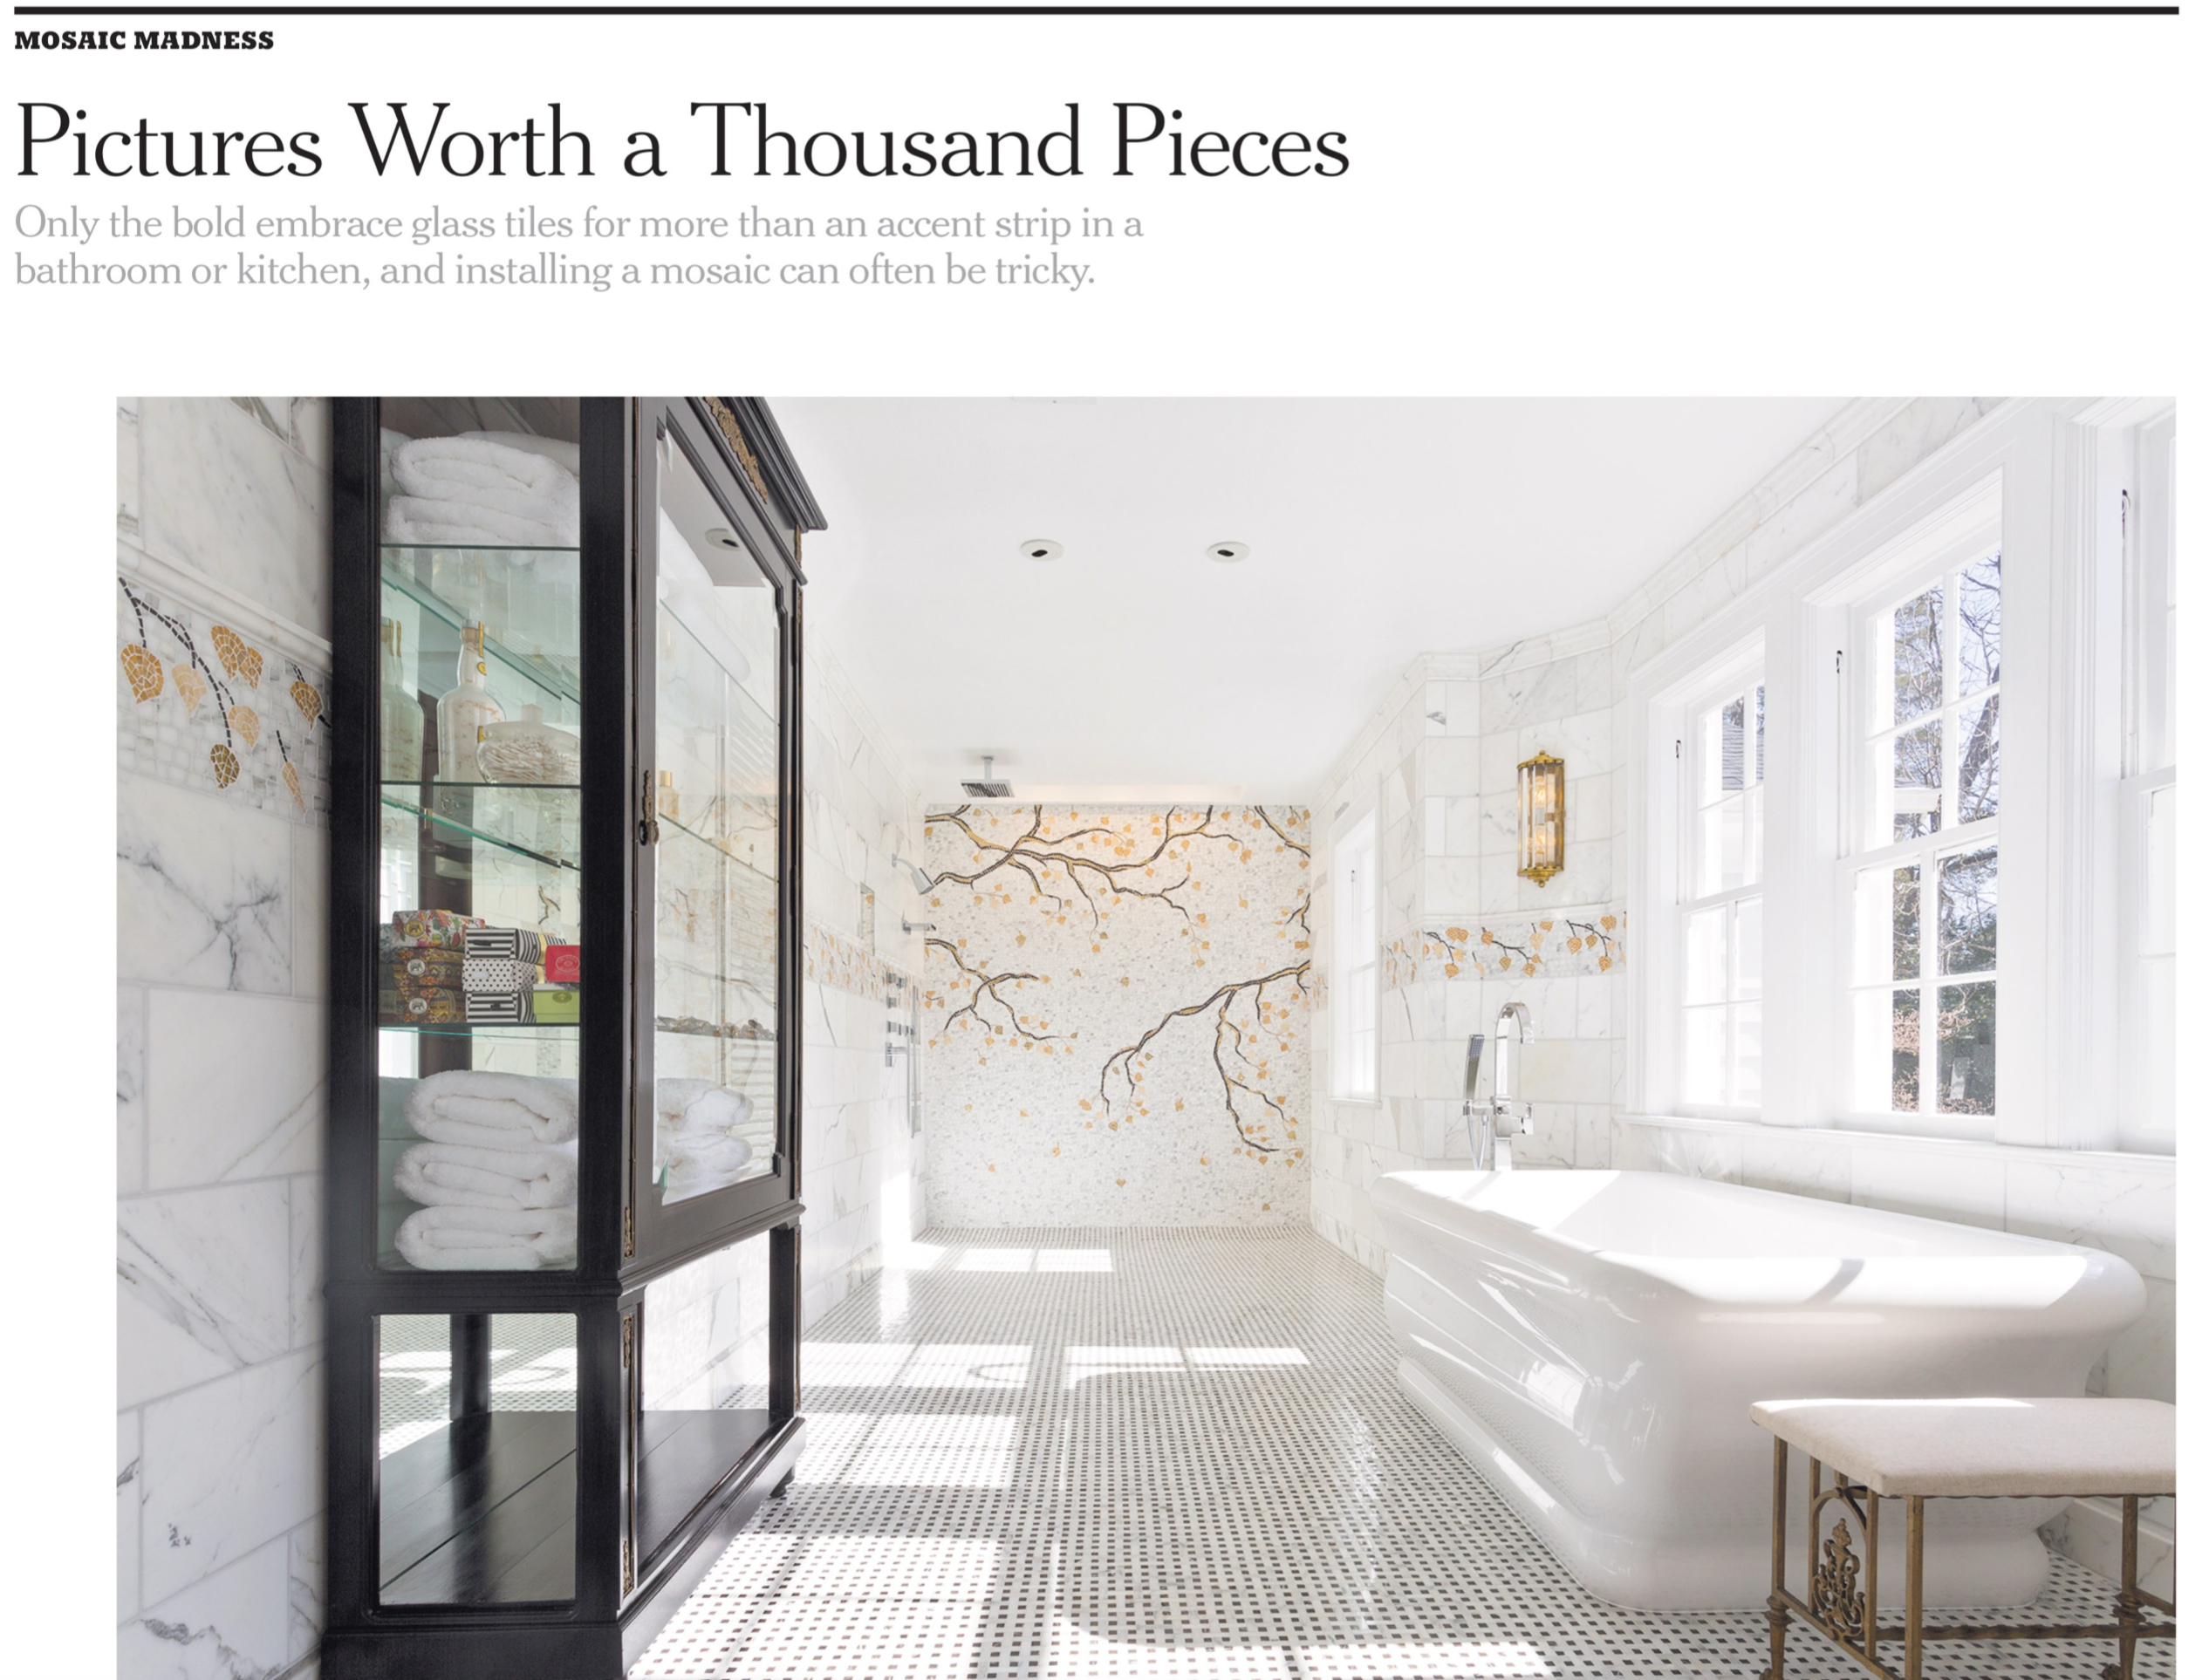 New Ravenna Featured New York Times